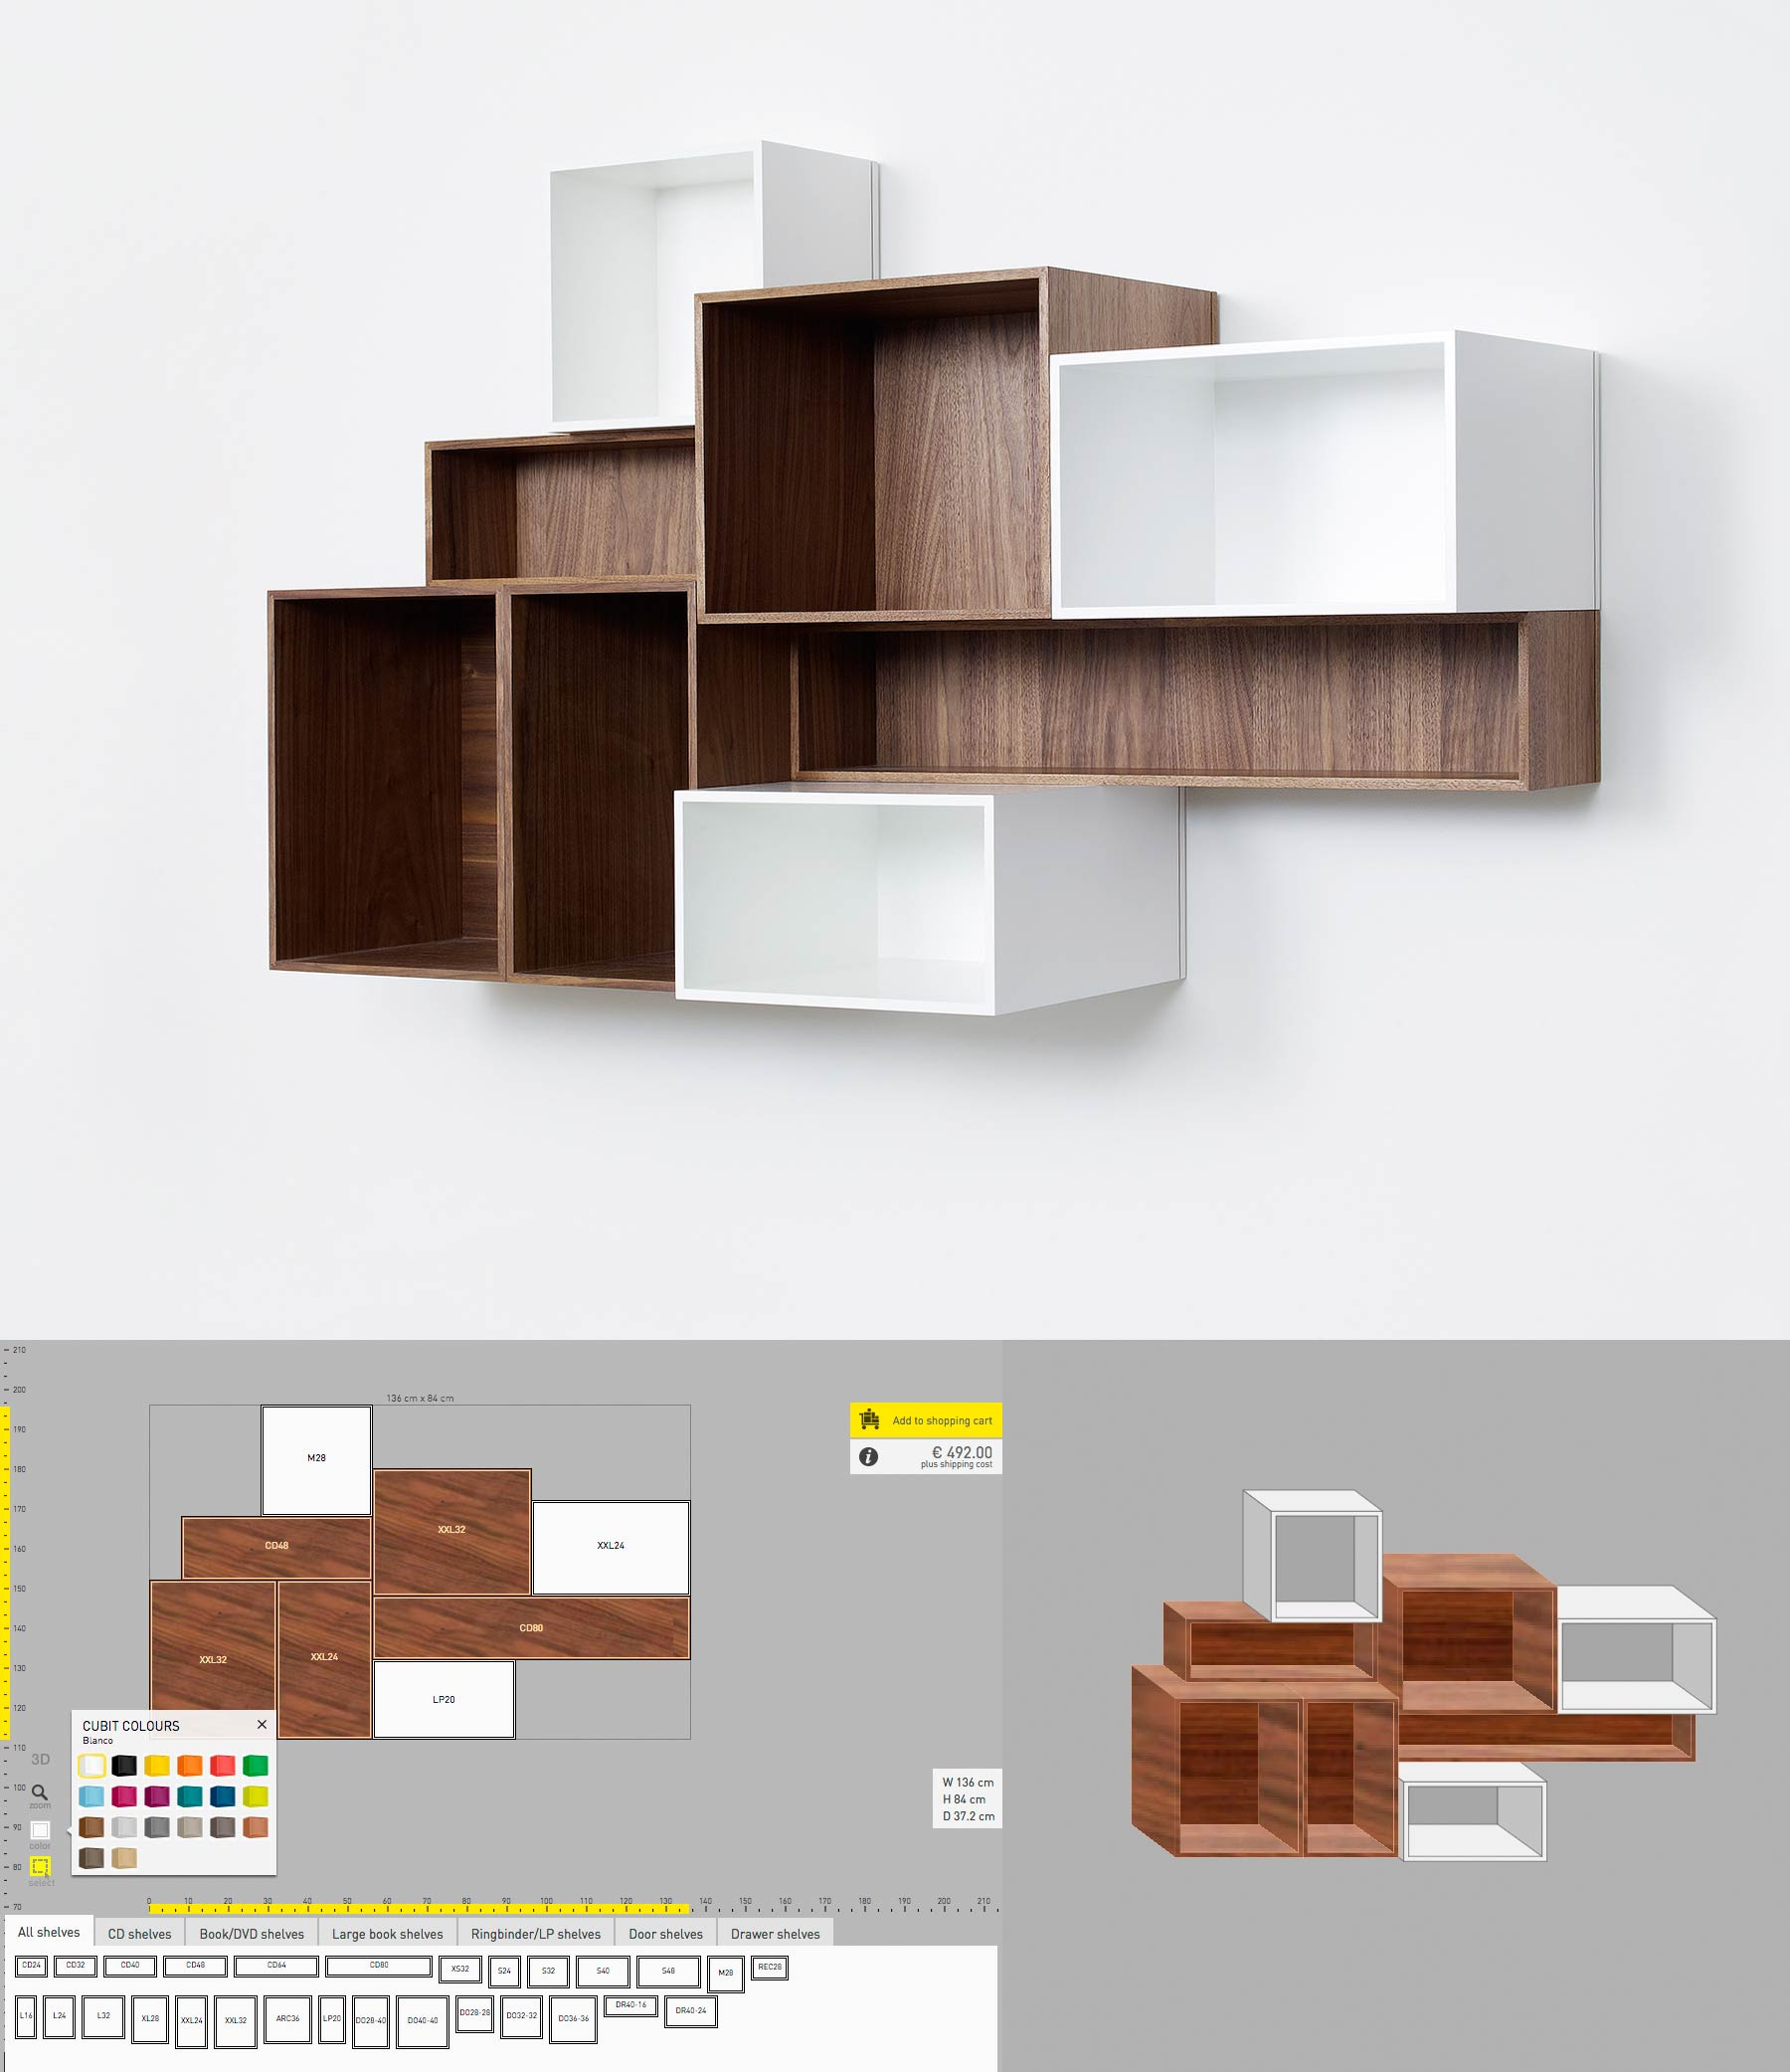 Shelvings made of small modules in different sizes, depths and finishes